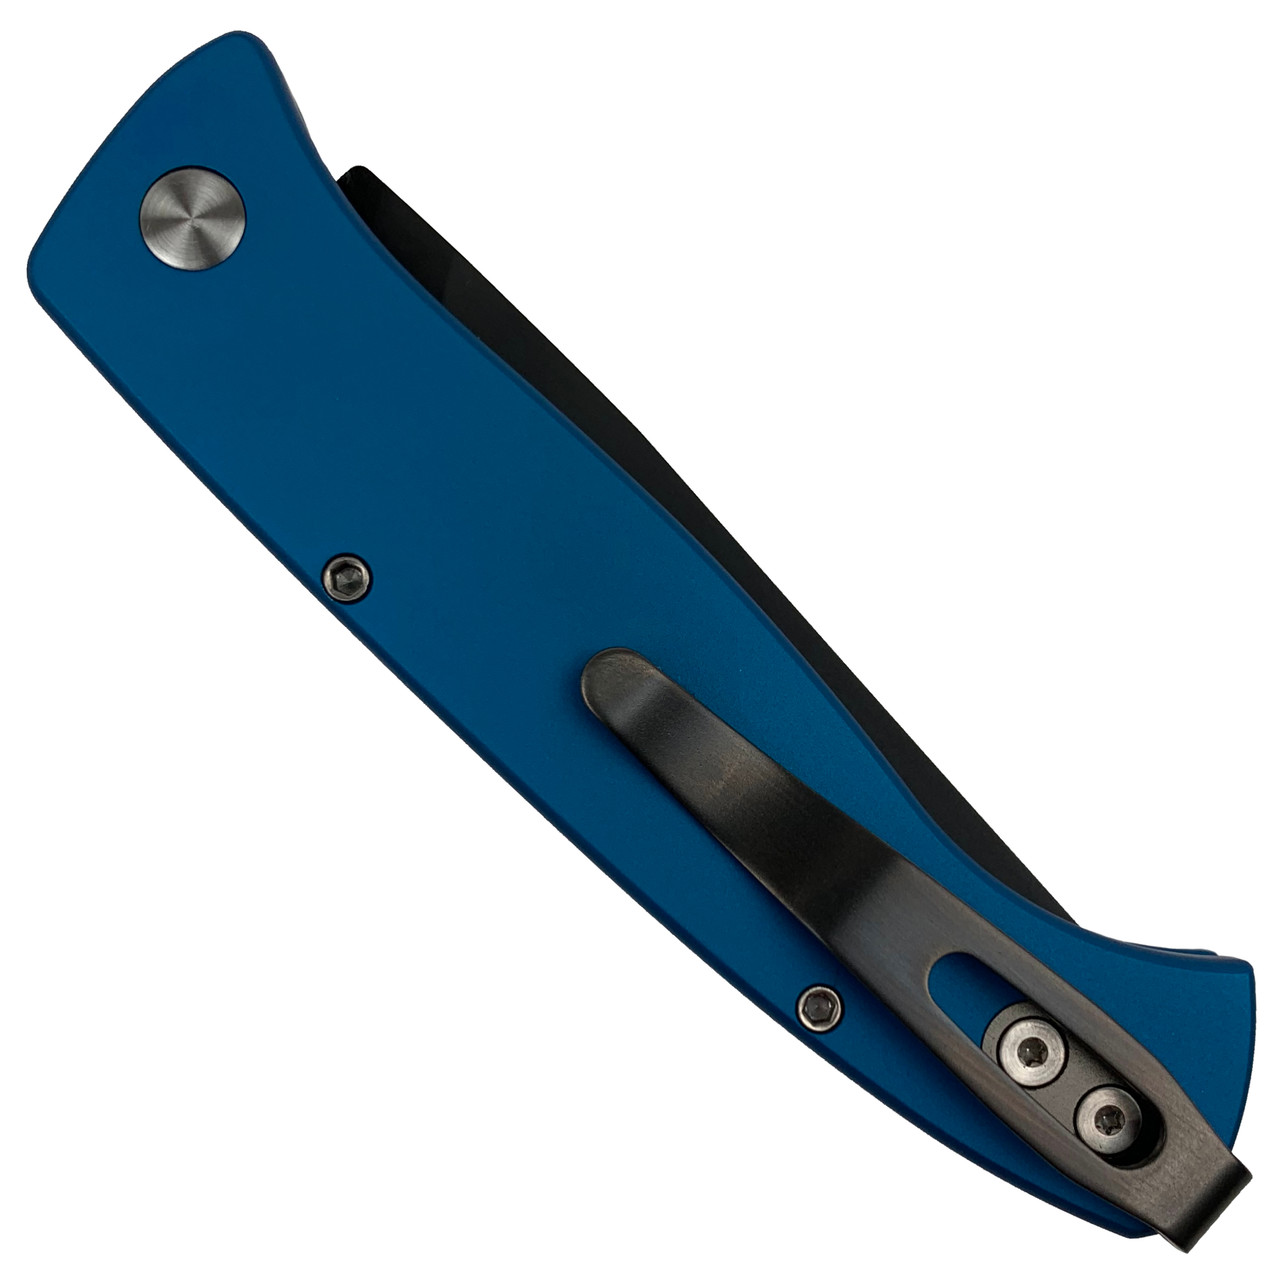 Pro-Tech Blue Small Brend #2 Auto Knife, Black Blade REAR VIEW